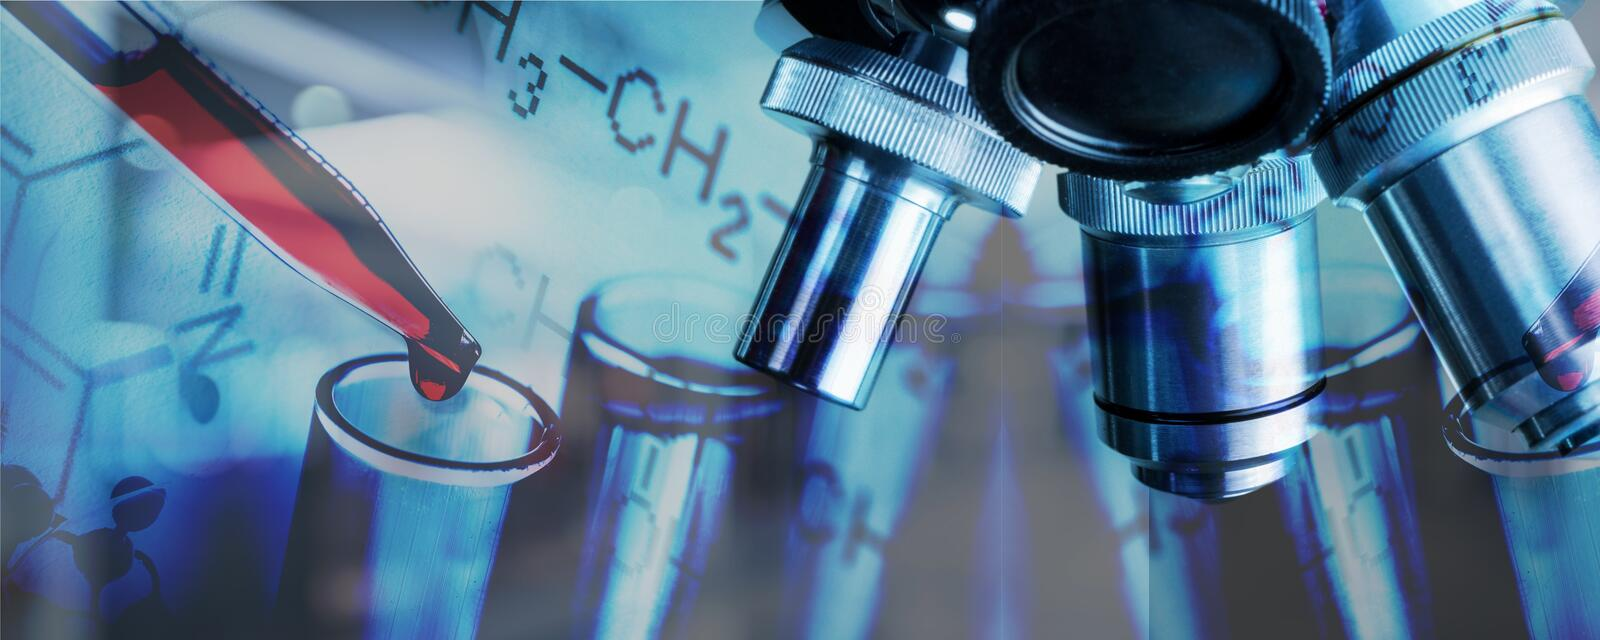 Background. Pharmaceutical research scientific banner abstract biotech royalty free stock photo